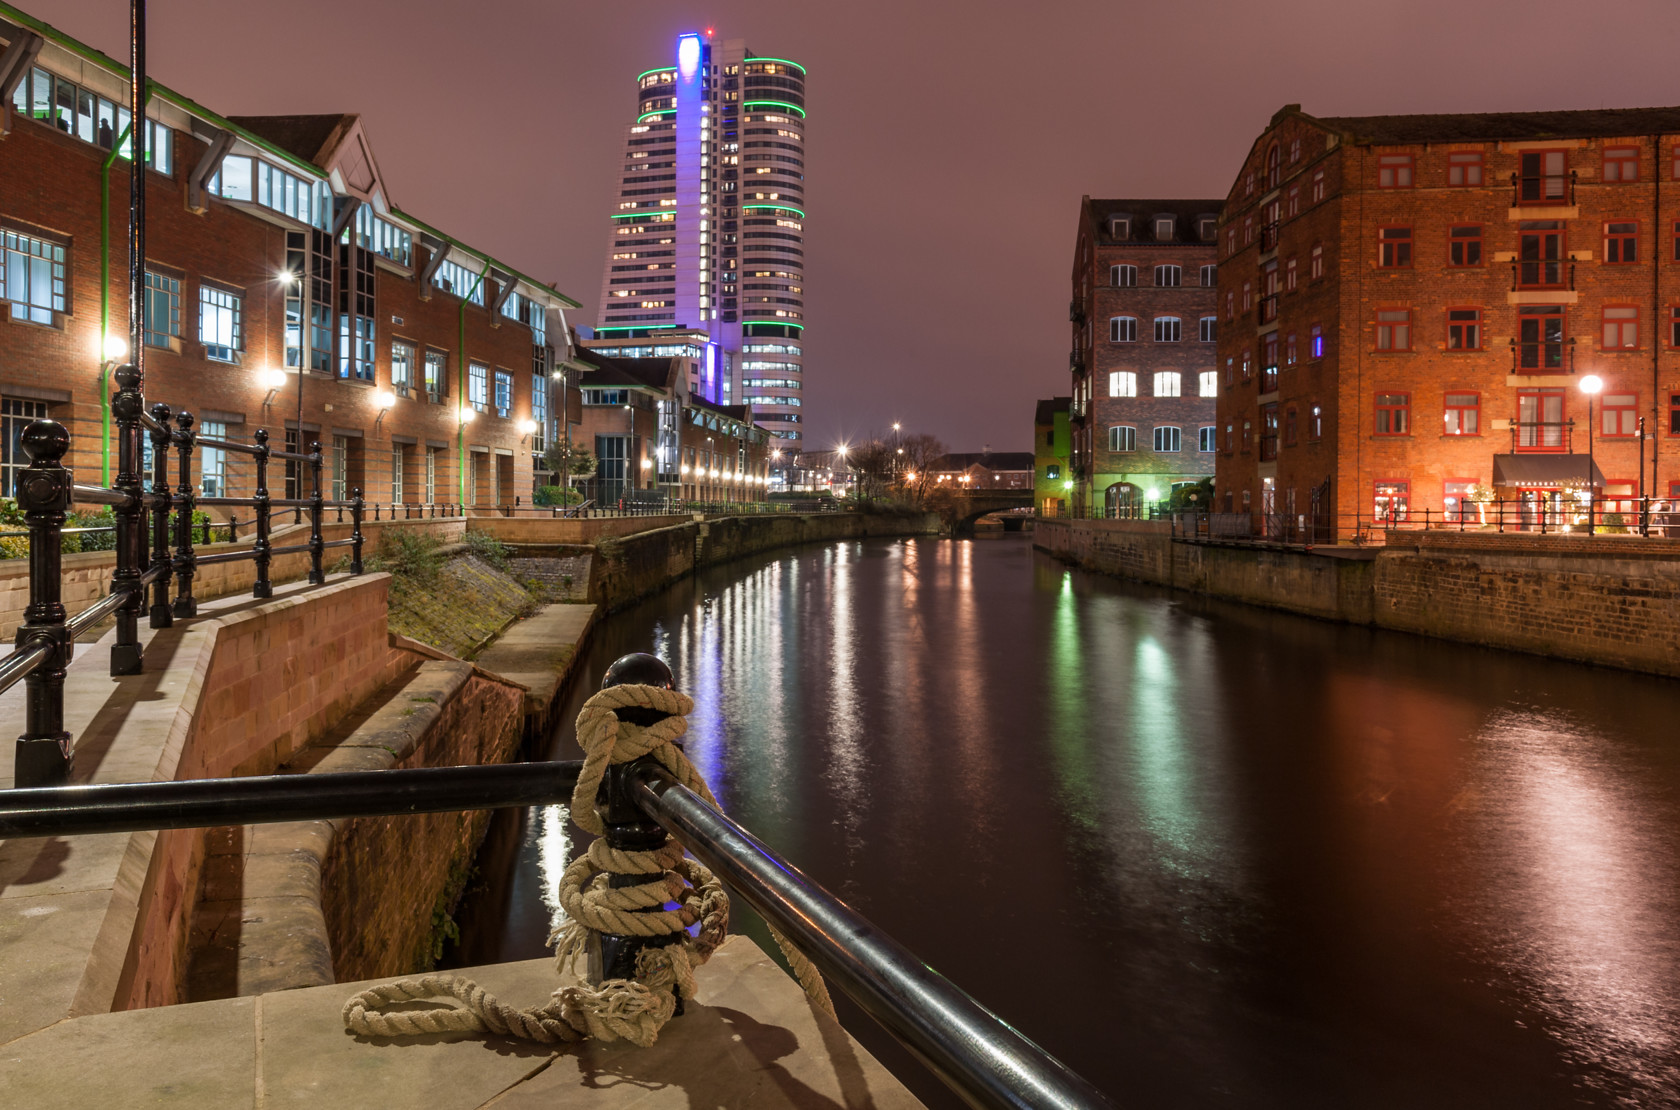 cold night in leeds (ref yo 250) 